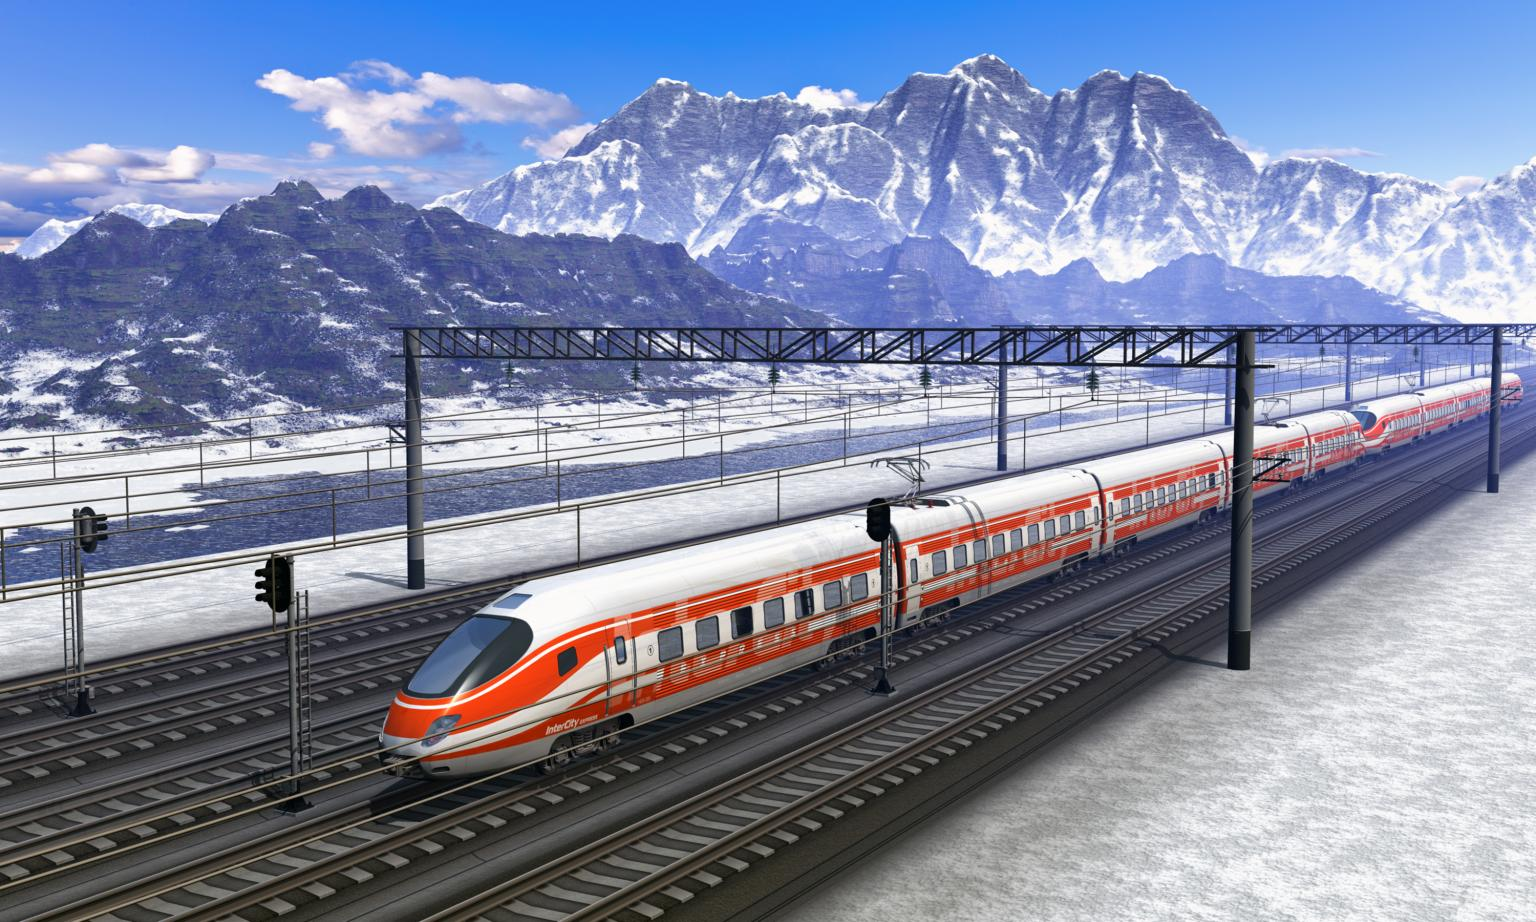 Warner Electric designed a high torque, high speed, high power clutch solutions for the train's hybrid transmission. Source: iStock - scanrail